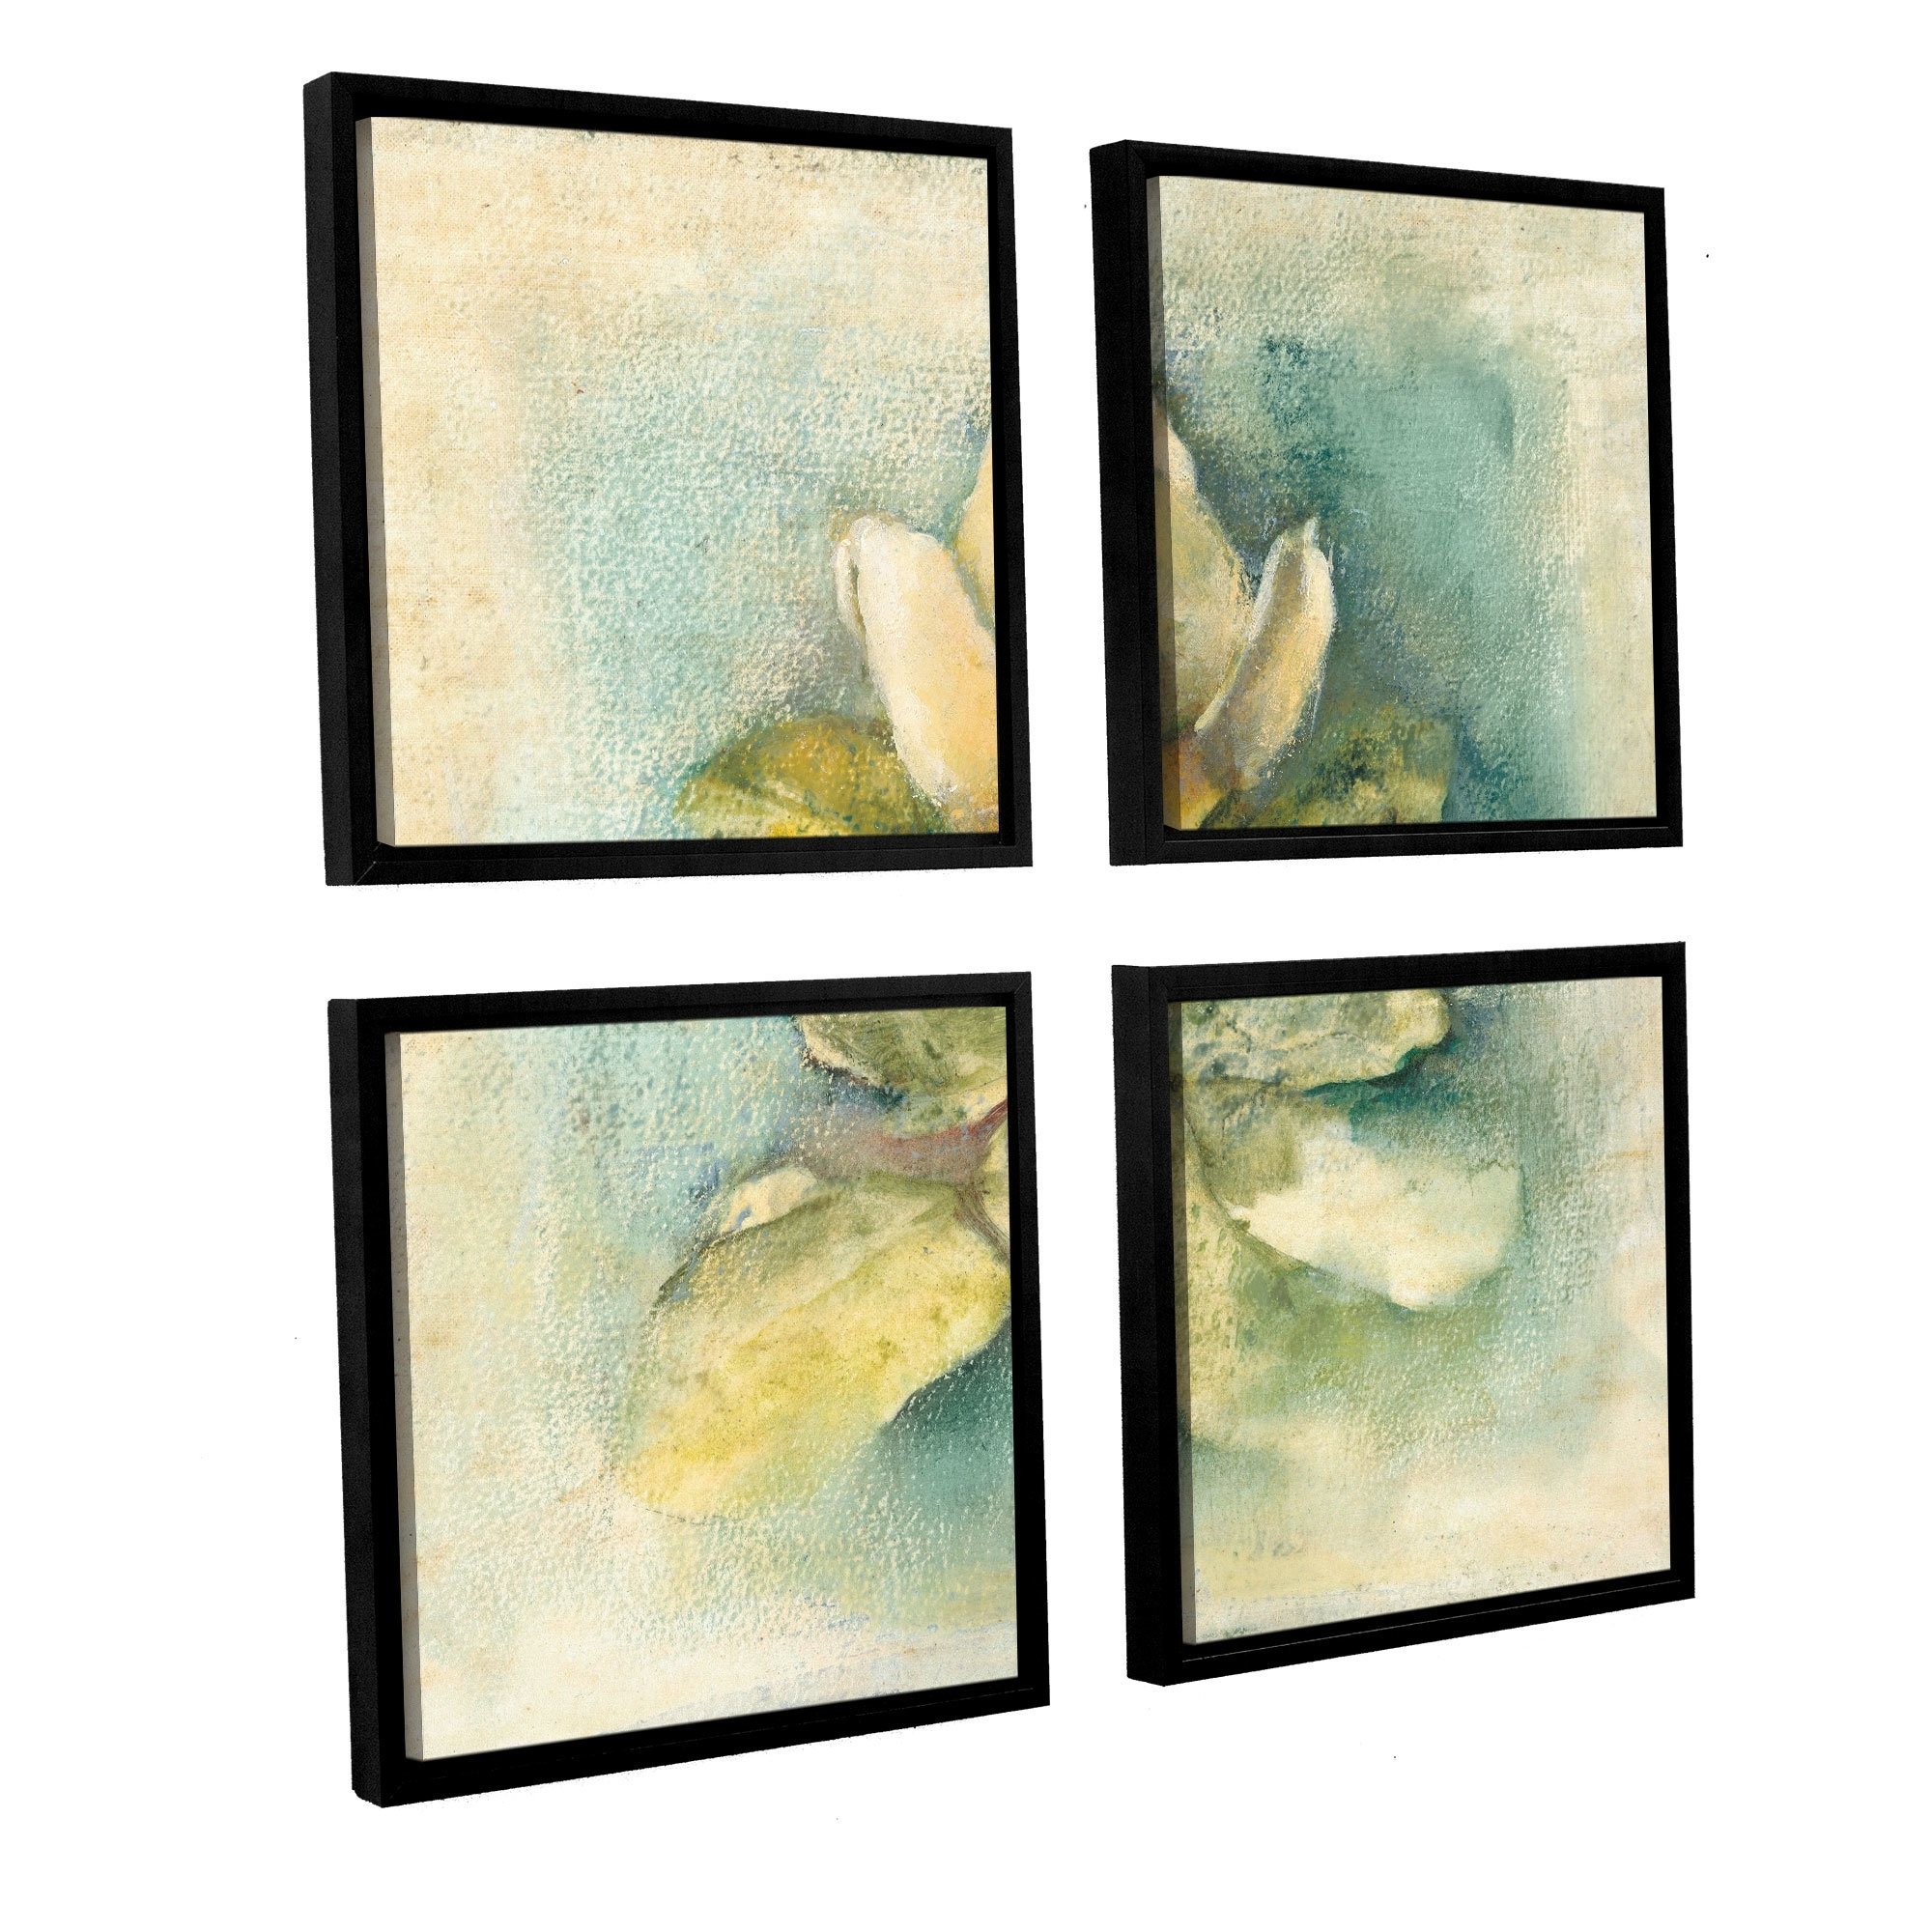 Artwall 'french Magnolia'cheri Blum 4 Piece Framed Painting Within Most Recent Cheri Blum Framed Art Prints (View 6 of 15)